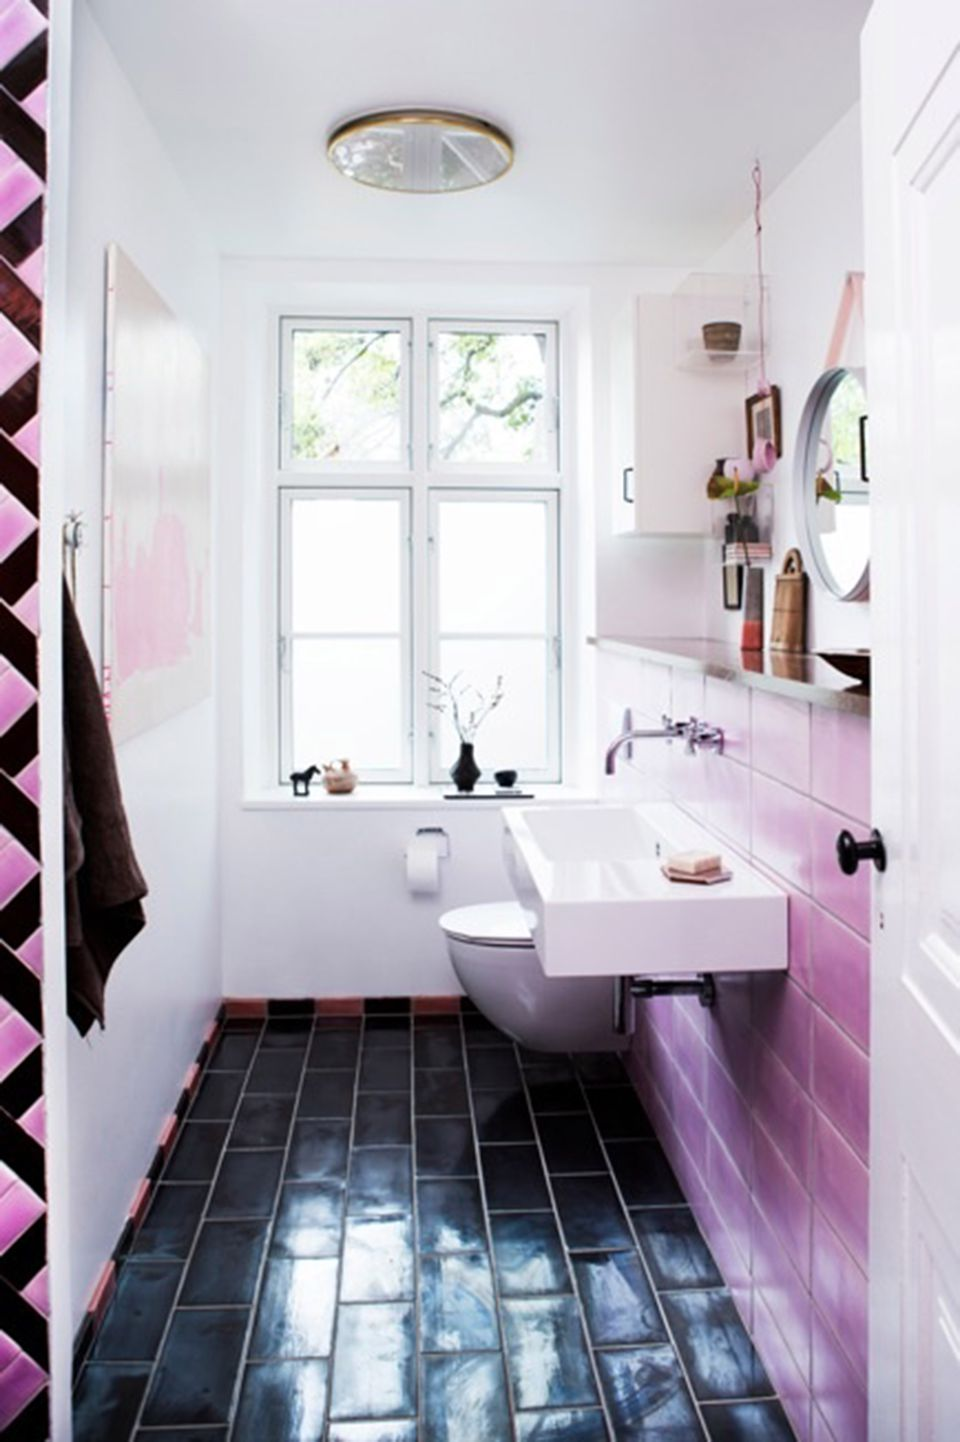 5 Tiled Bathrooms That Will Amaze You